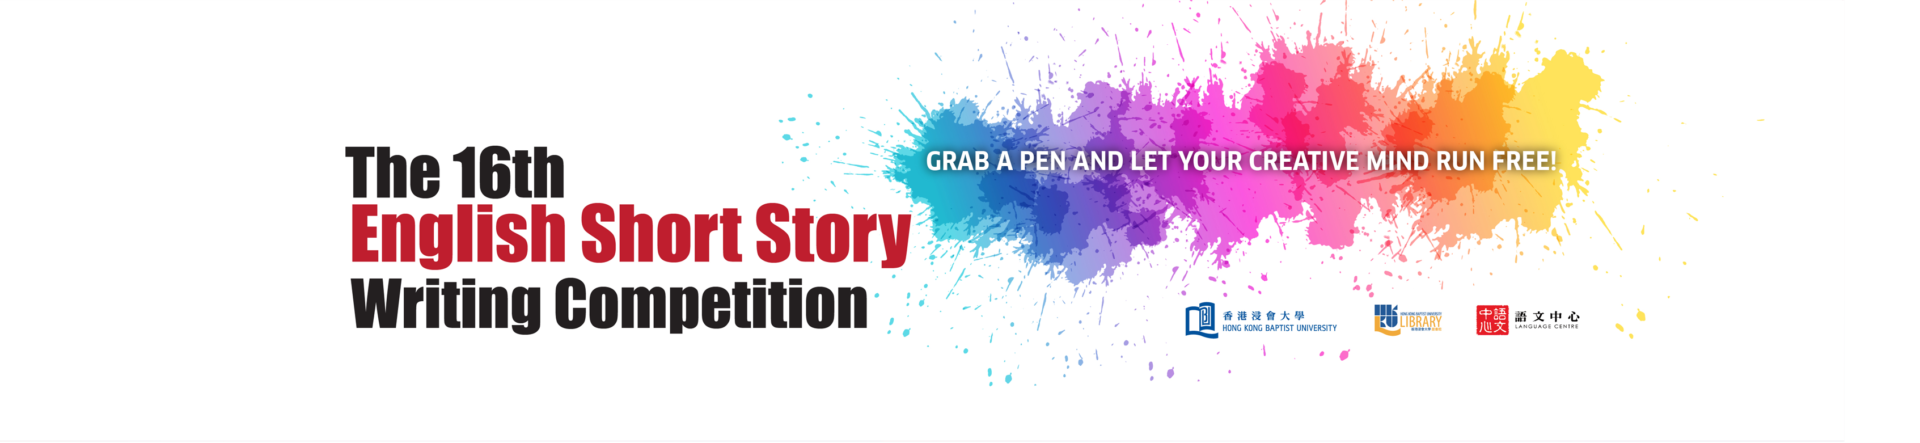 (MainVisual) 16th_English_Short_Story_Writing_Competition